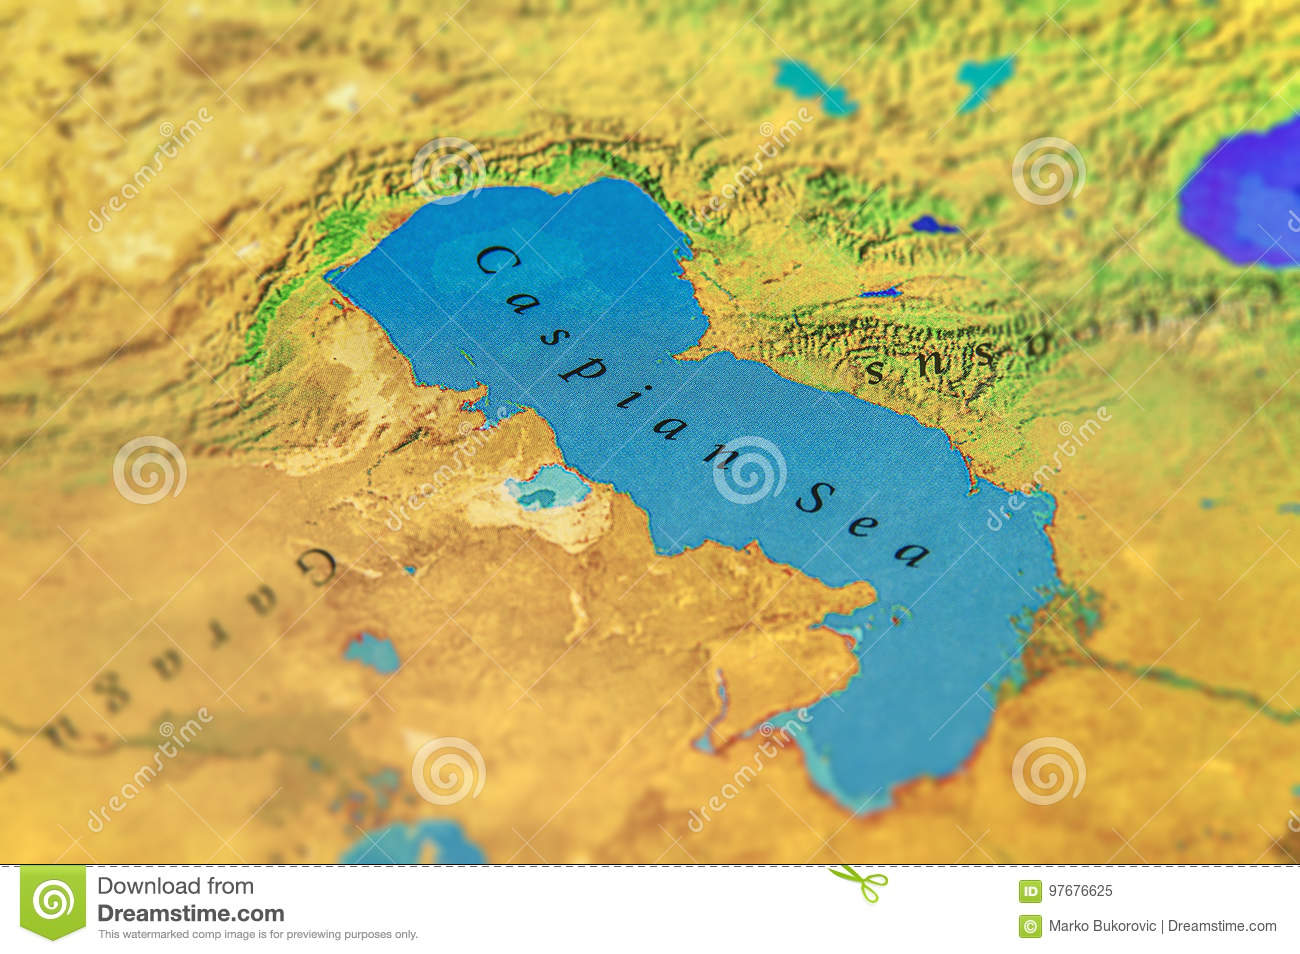 Geographic Map Of Midle East Caspian Sea Stock Image - Image ...